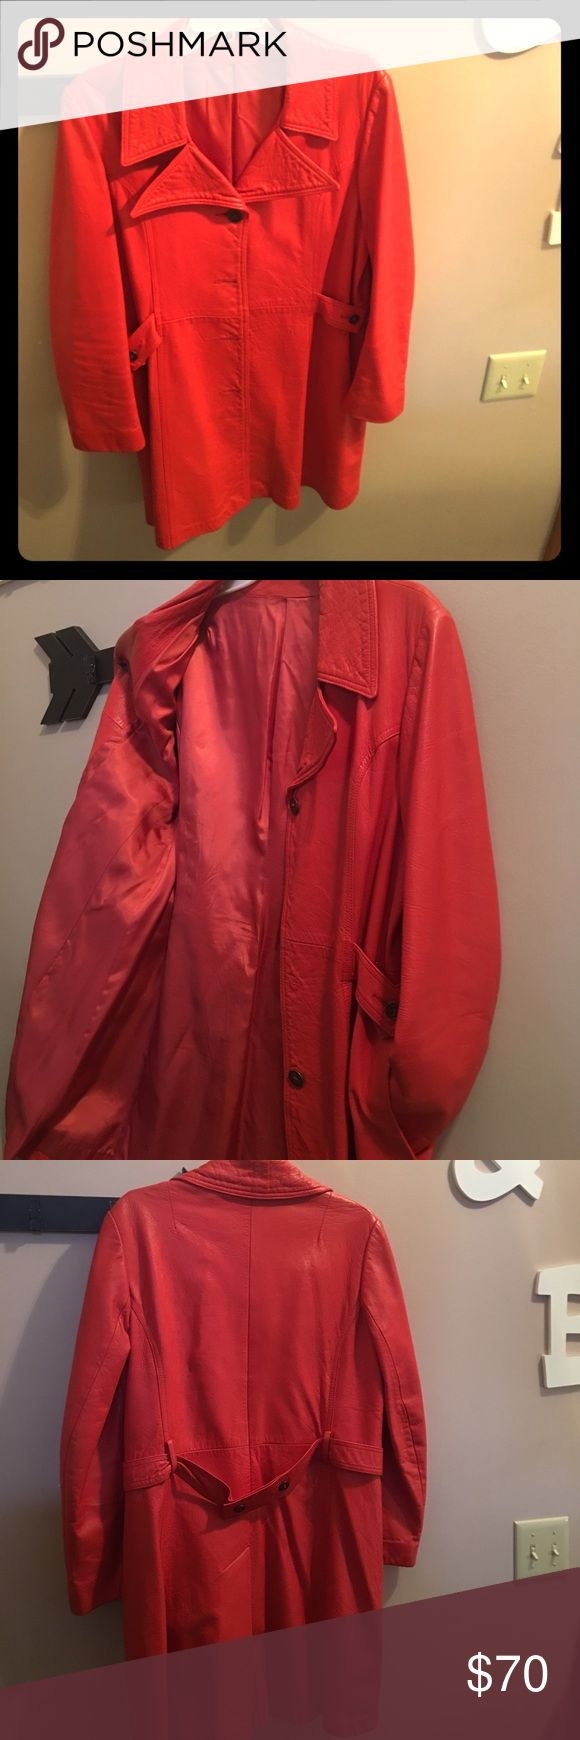 Vintage bright orange full length leather coat This is one SASSY girl!  When you wear this, heads will turn and compliments ensue.  I wore her a hand full of times with tall boots & leggings.  Pretty, matching scarf sold separately or added to bundle.  Fall is here! **missing middle button - fairly generic, easily replaceable. New England Sportswear Company Jackets & Coats Trench Coats